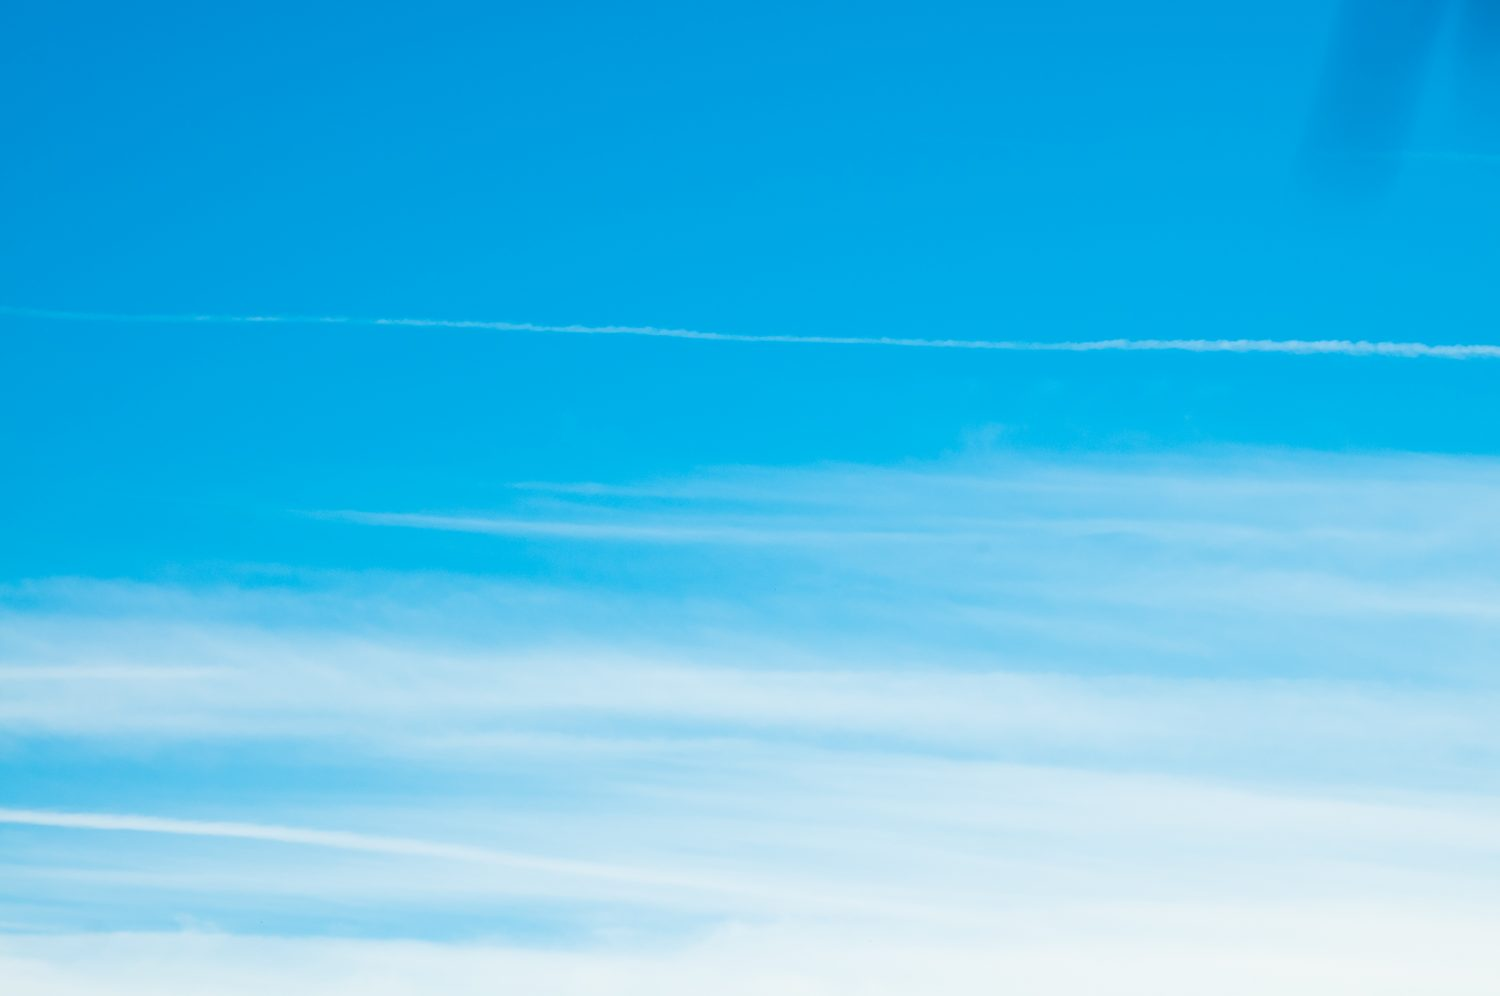 Abstract striped clouds blue sky